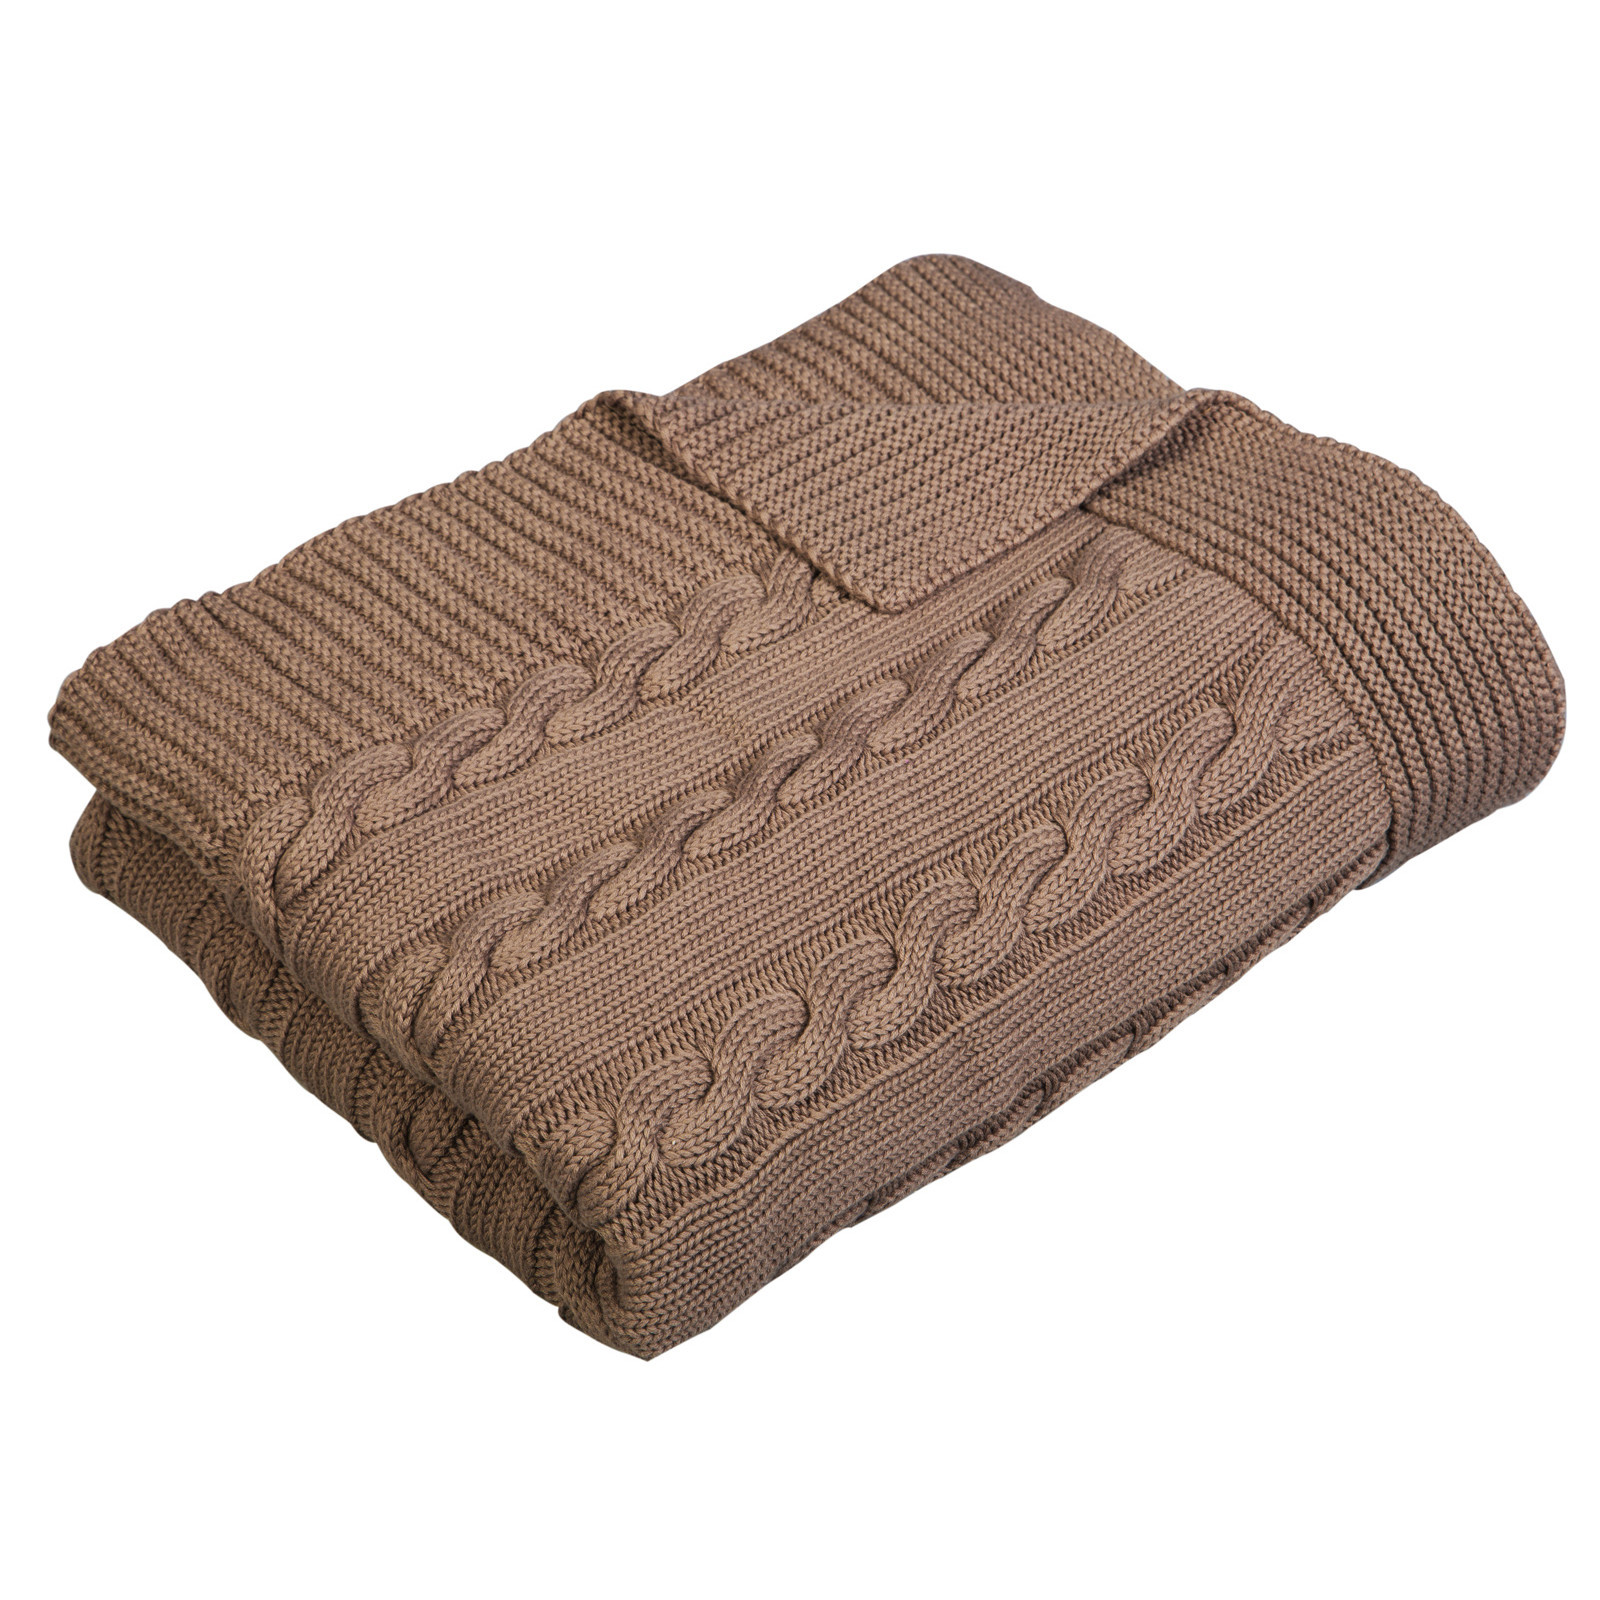 Cable Knit Throw Lovely Arus Luxury Cotton Cable Knit Throw Blanket & Reviews Of Charming 49 Models Cable Knit Throw